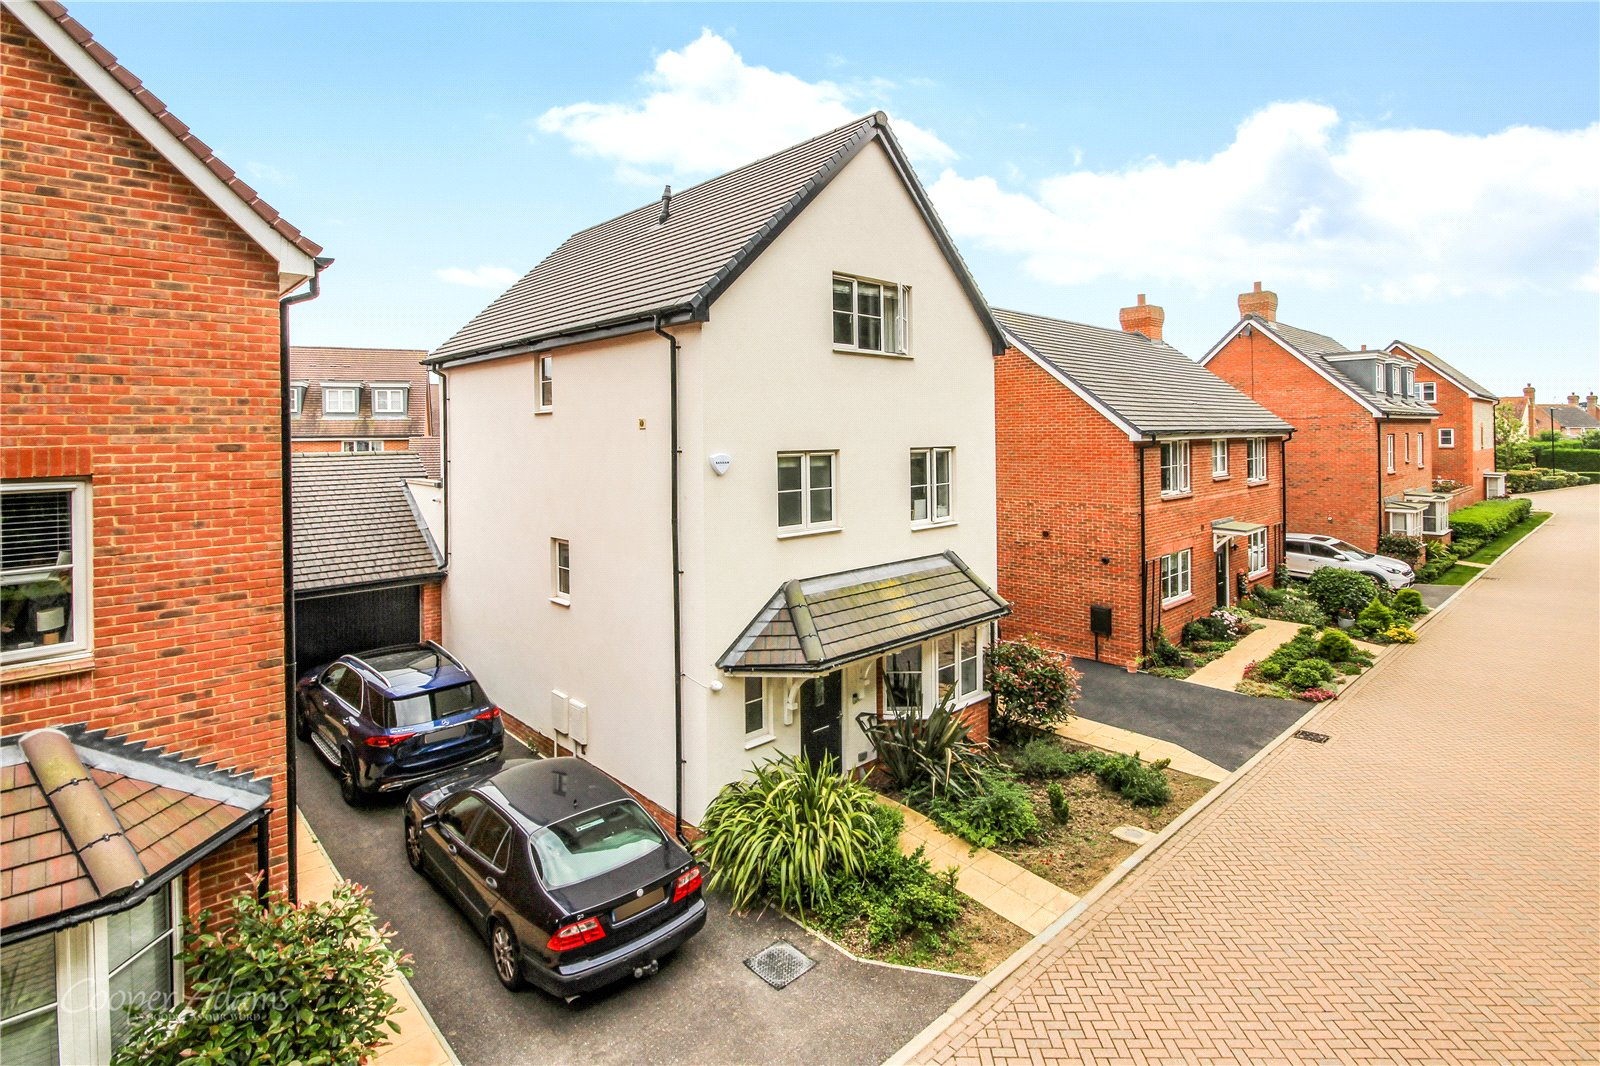 4 bed house for sale in Thyme Place, Angmering, BN16